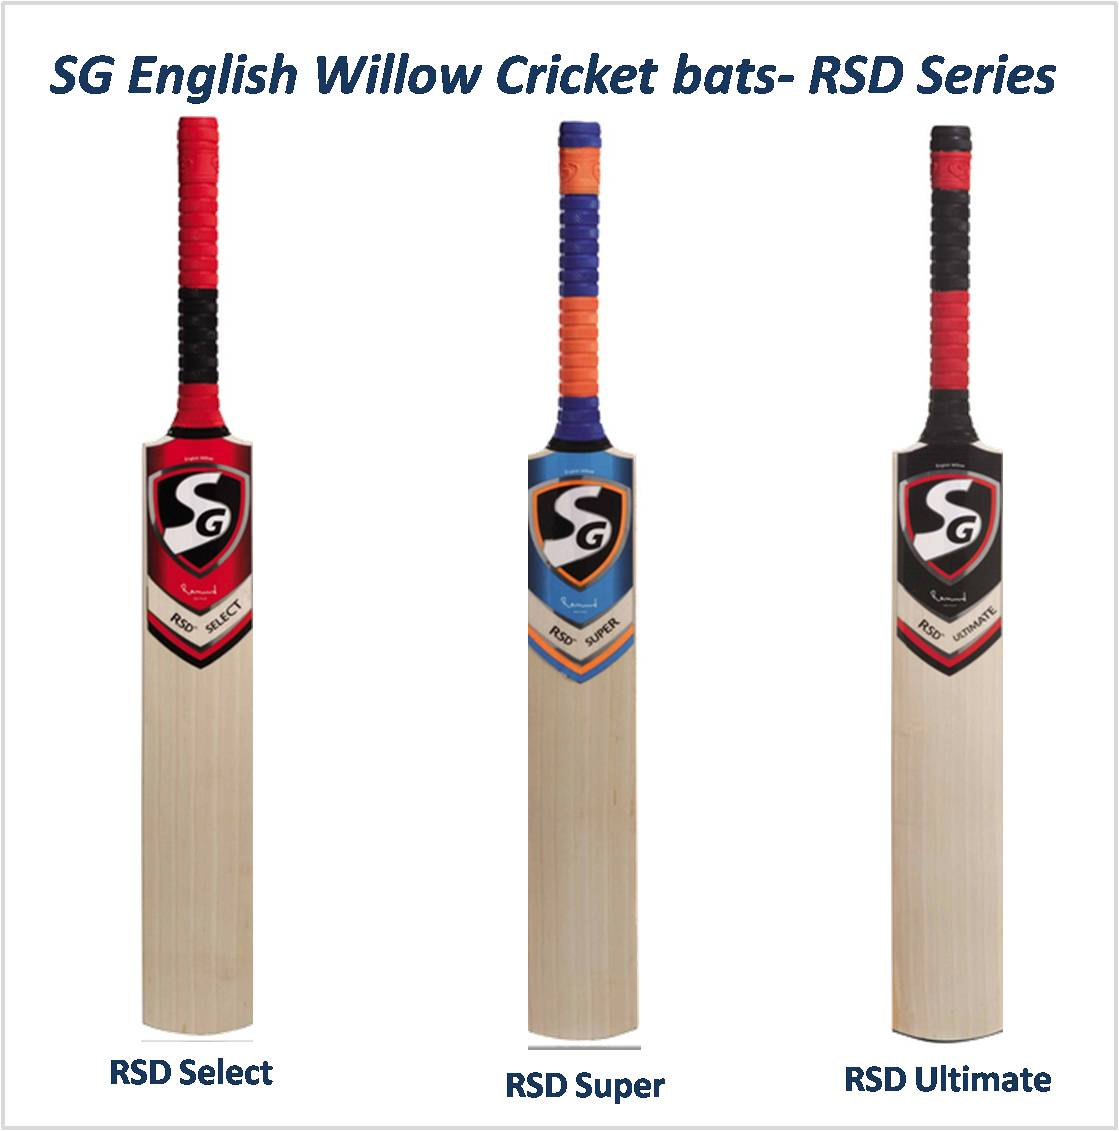 SG English Willow Cricket bats- RSD Series New